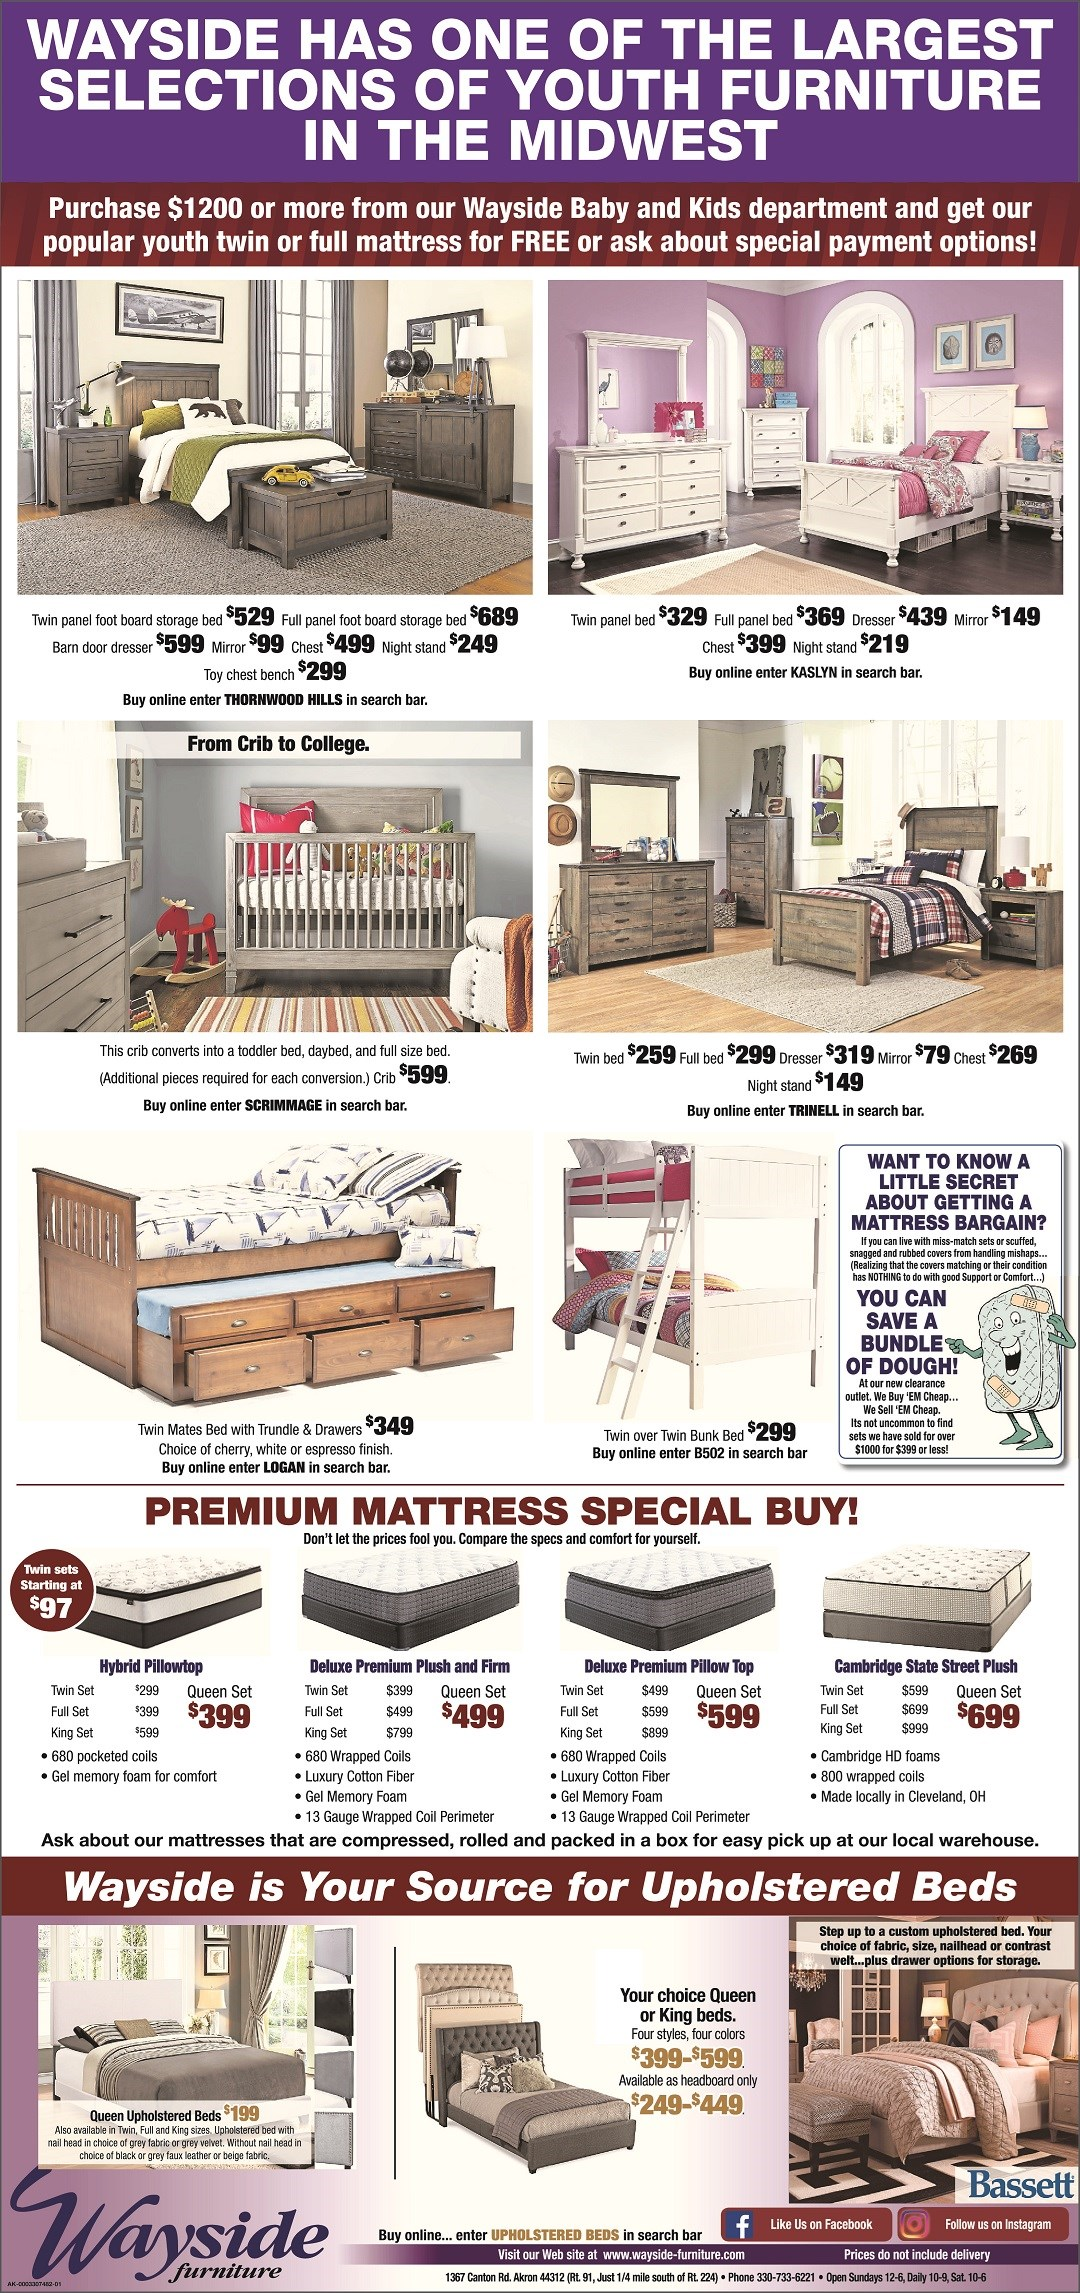 Youth Bedroom Sets Cribs Twin Beds Full Mates Bed With Trundle